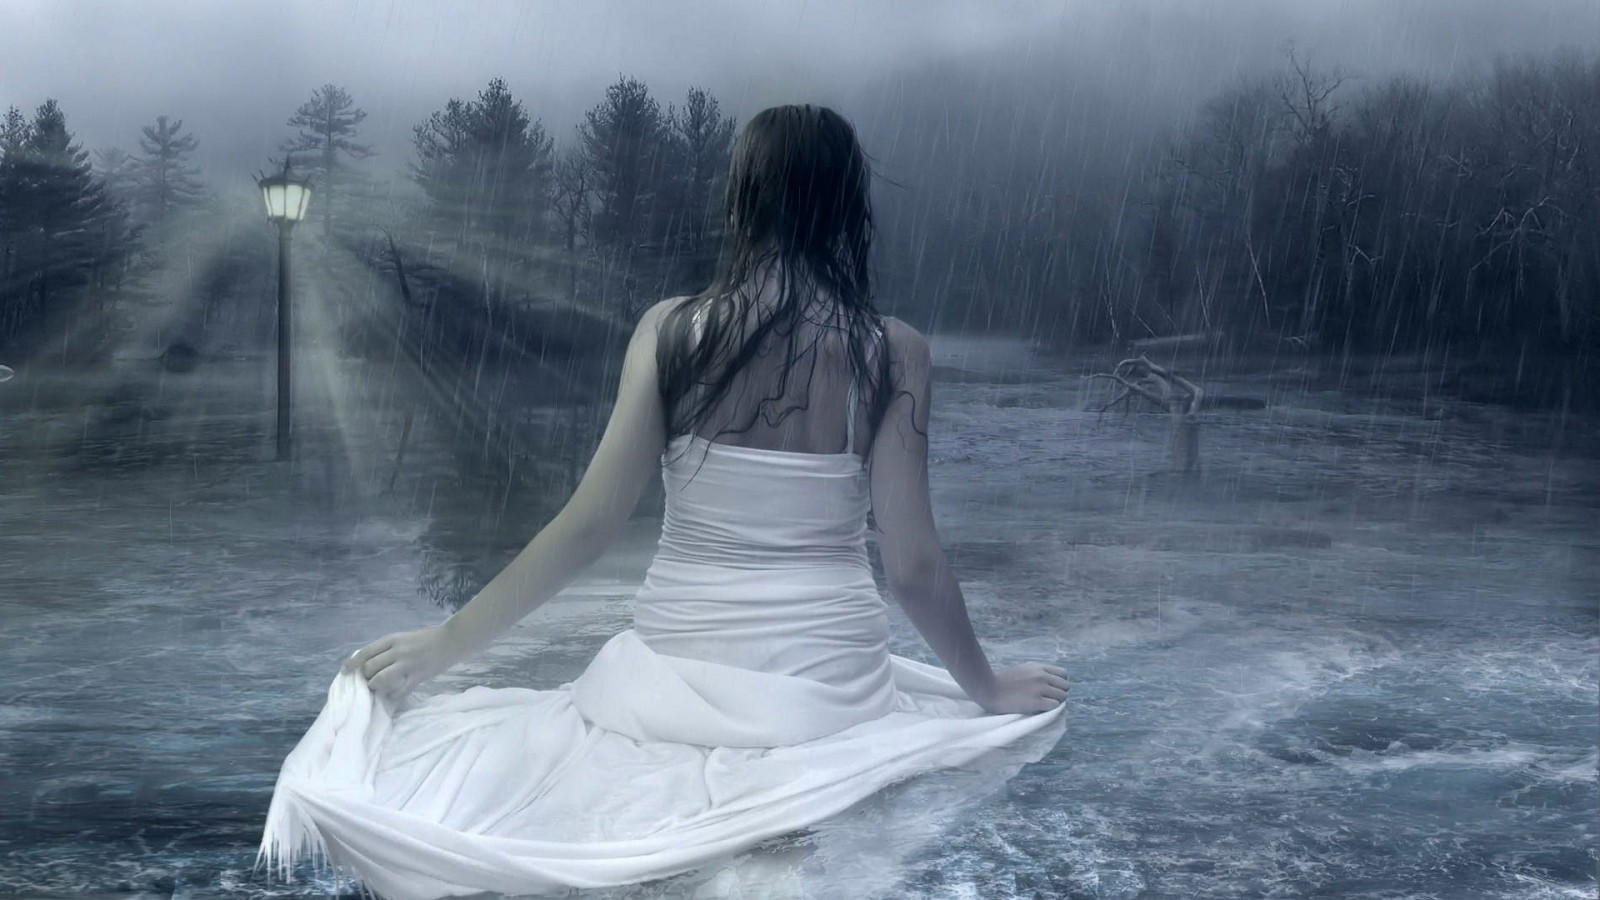 WALLPAPERS sad alone girls wallpapers sad alone girls in rain 1600x900